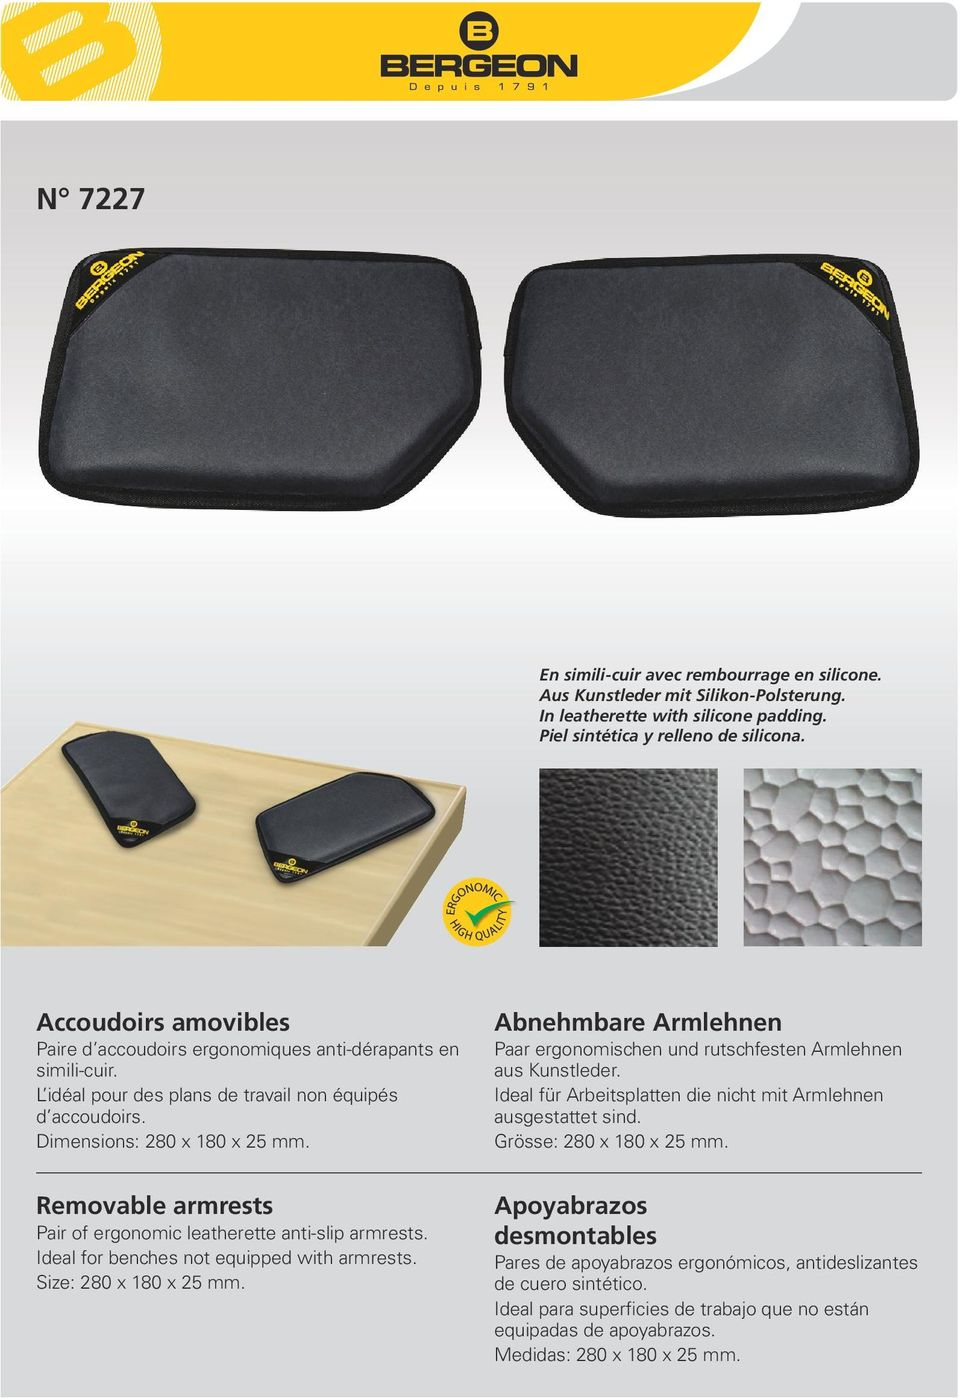 Removable armrests Pair of ergonomic leatherette anti-slip armrests. Ideal for benches not equipped with armrests. Size: 280 x 180 x 25 mm.